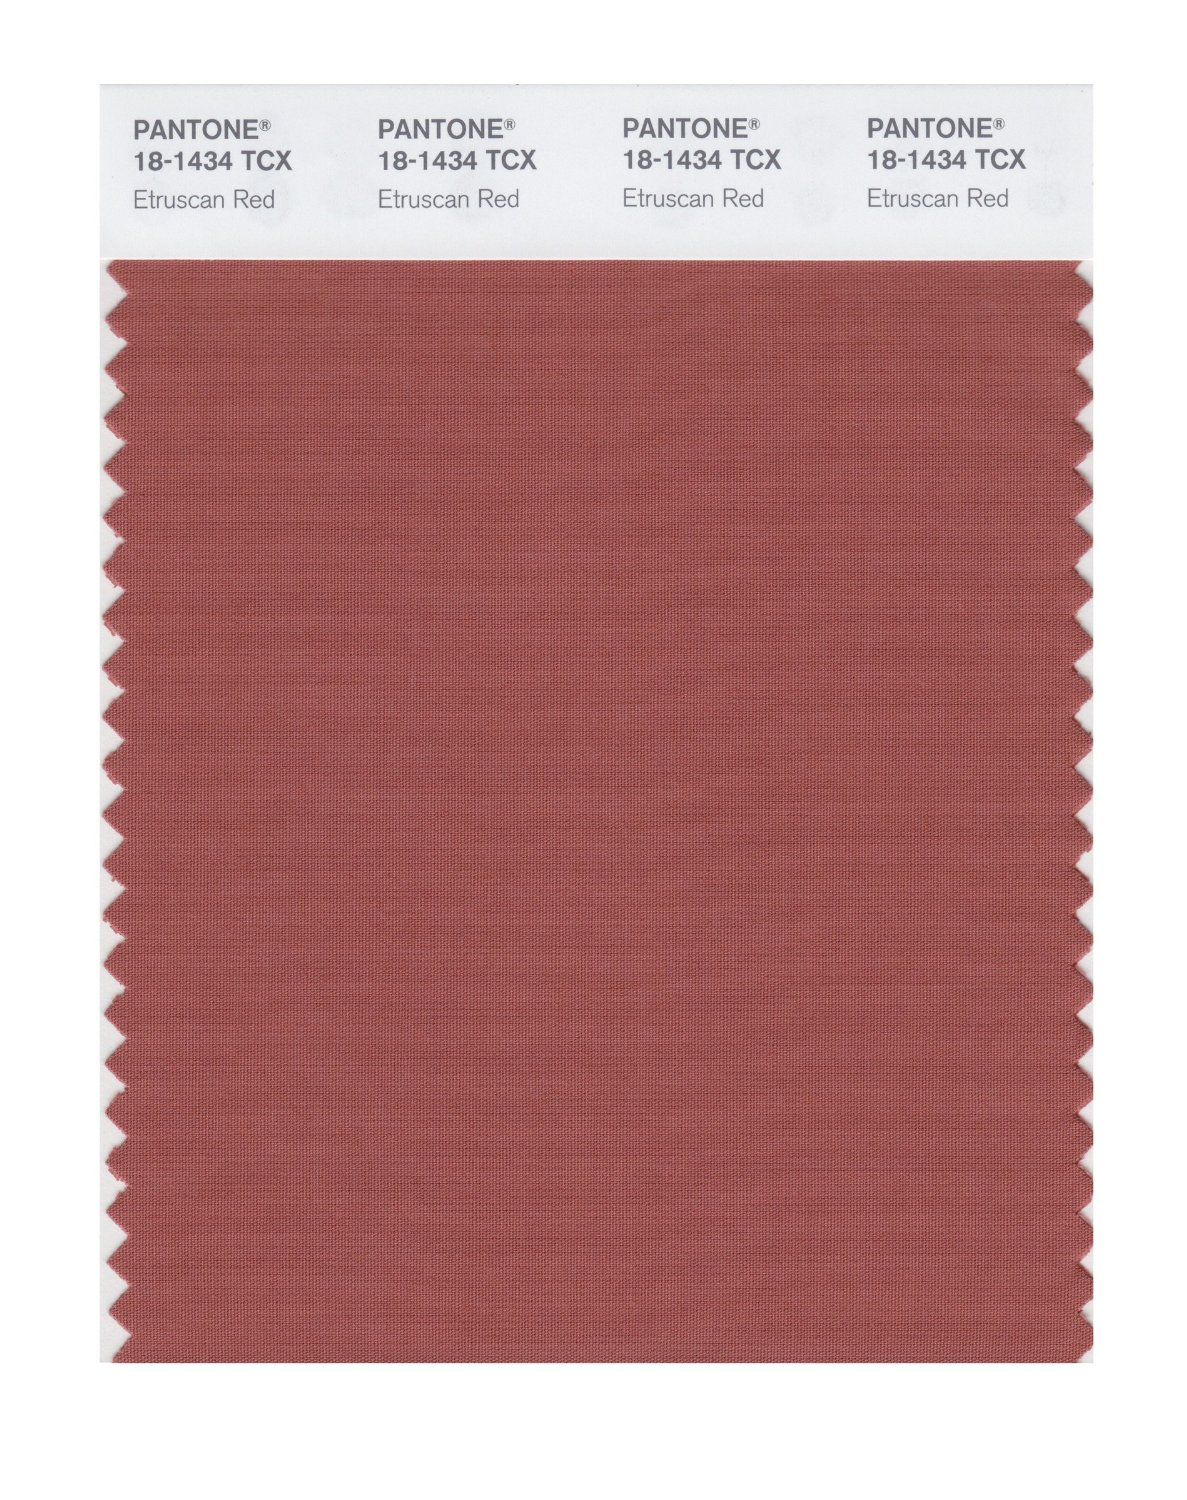 Pantone Smart Swatch 18-1434 Etruscan Red